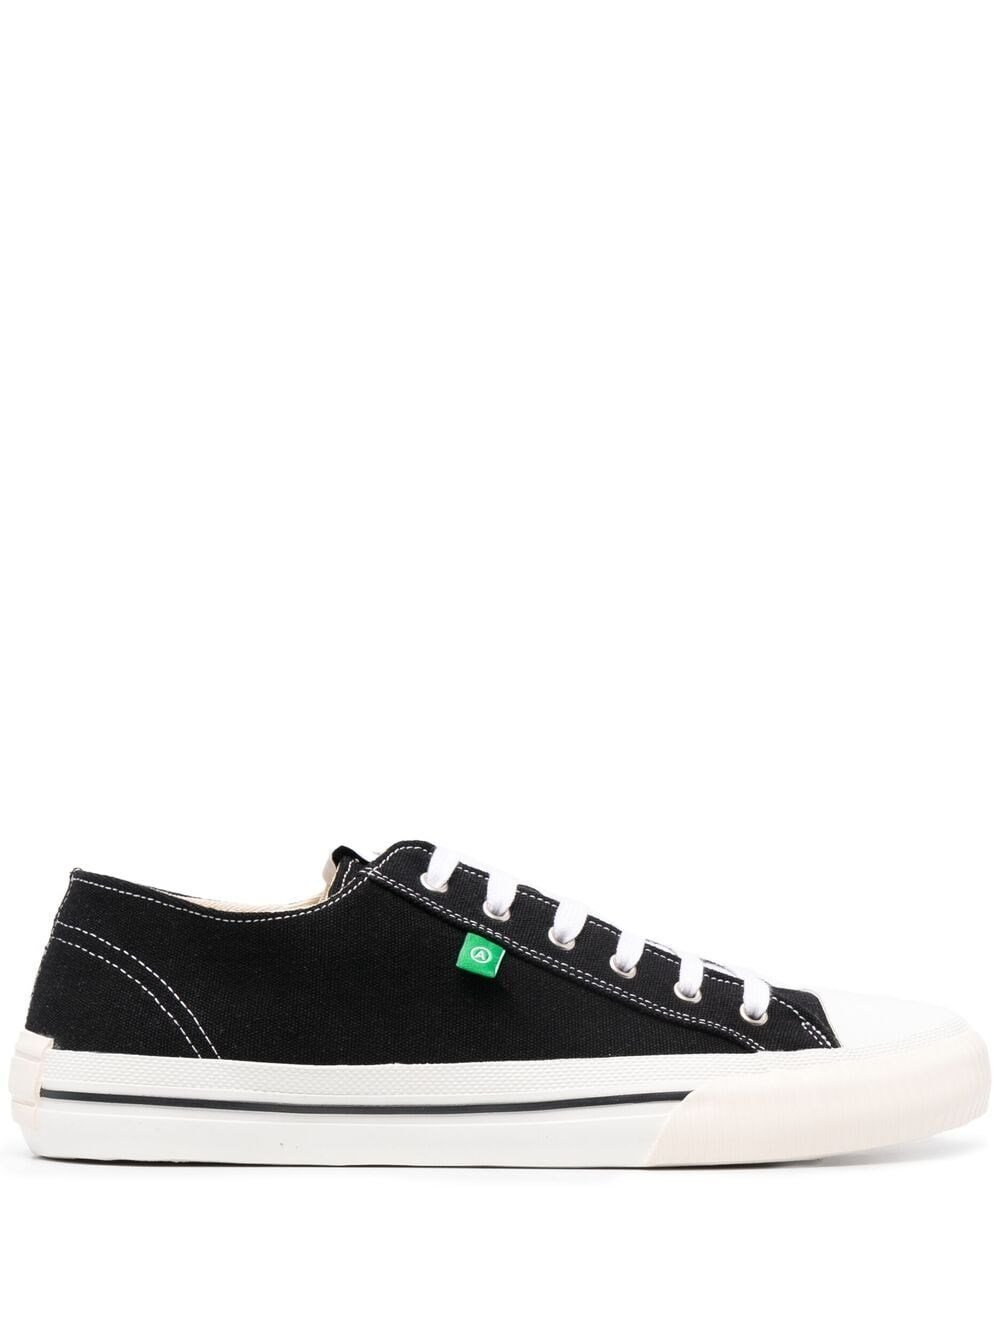 Midnight Low Black Fabric Sneakers